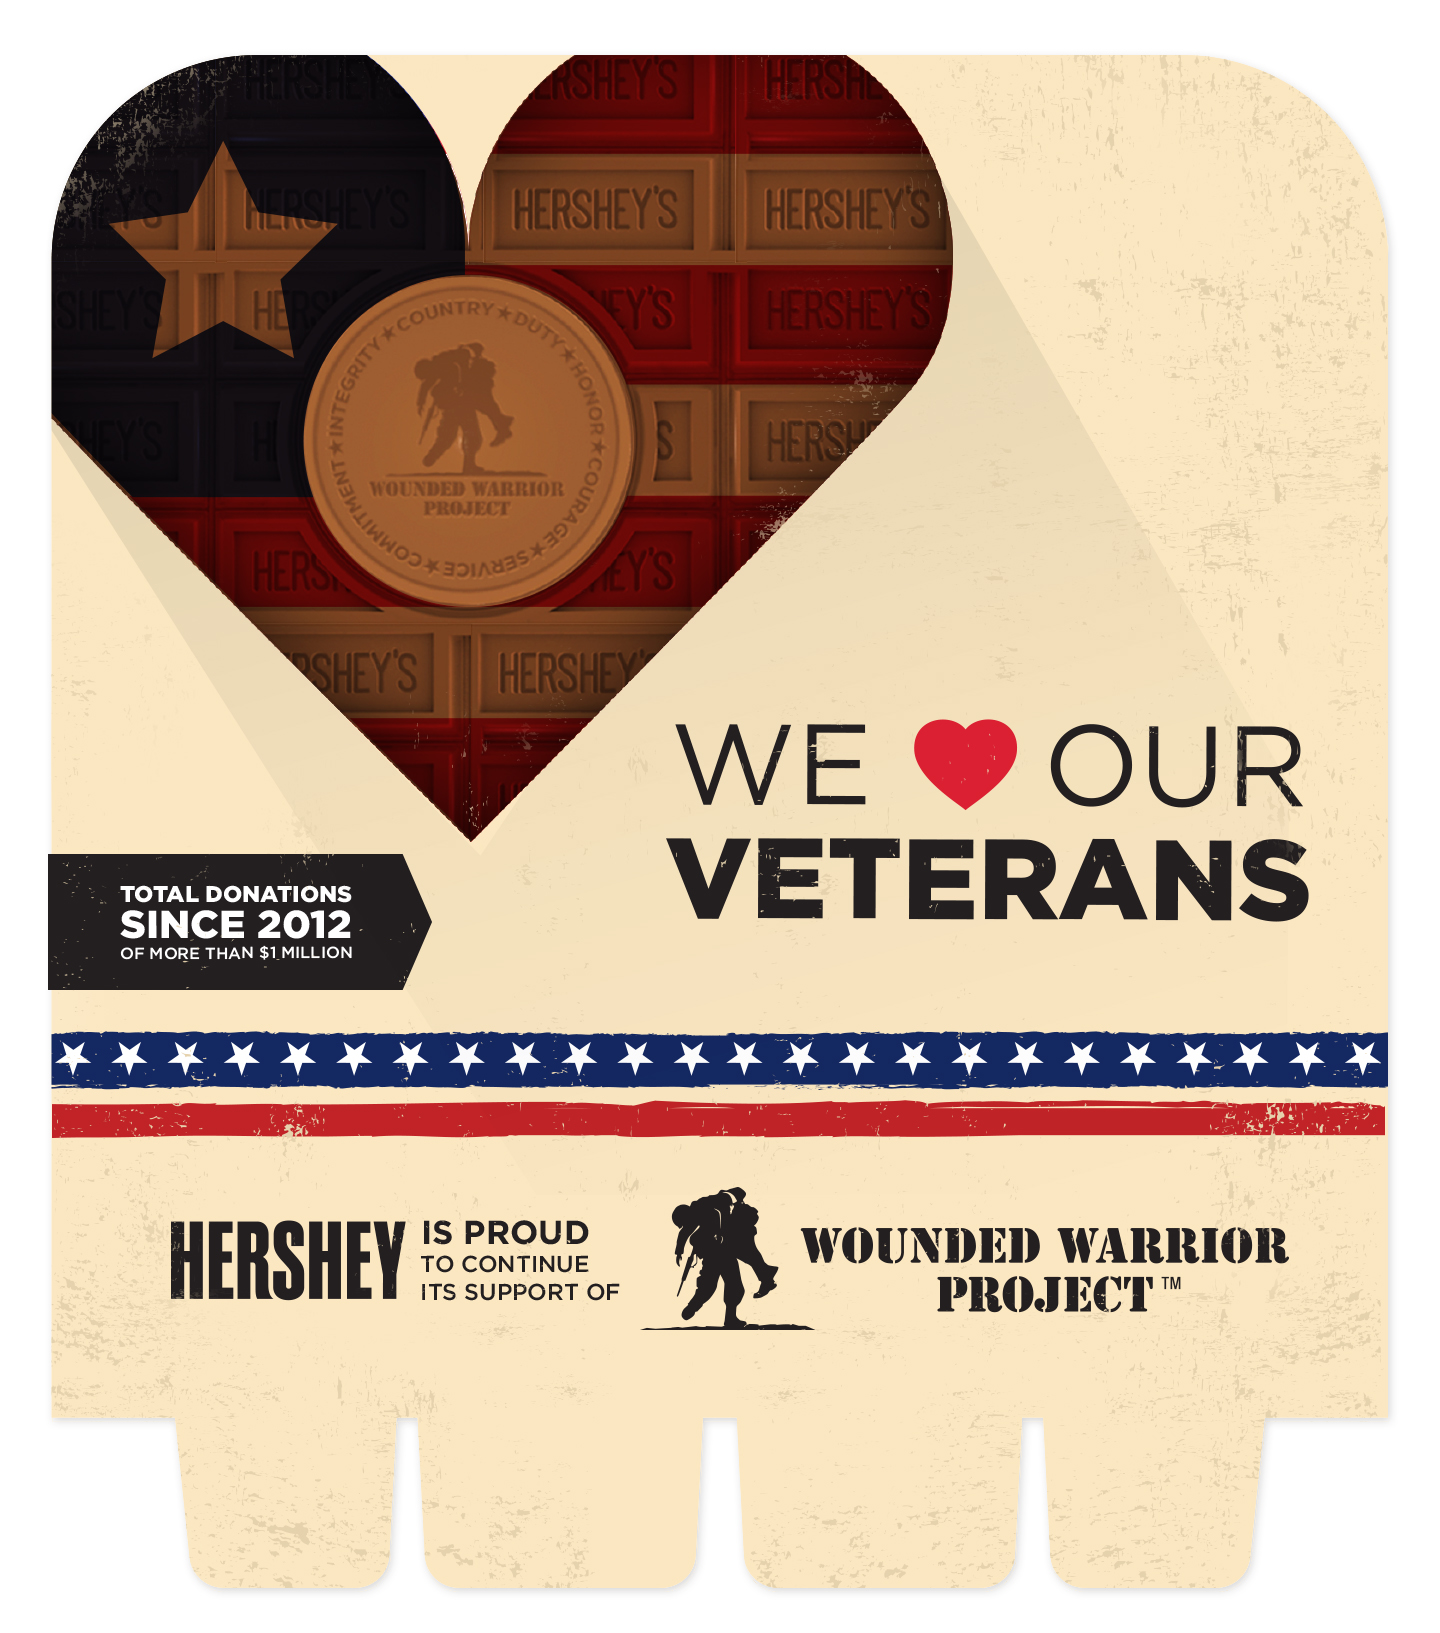 Concepts for Hershey's and Wounded Warrior Project.